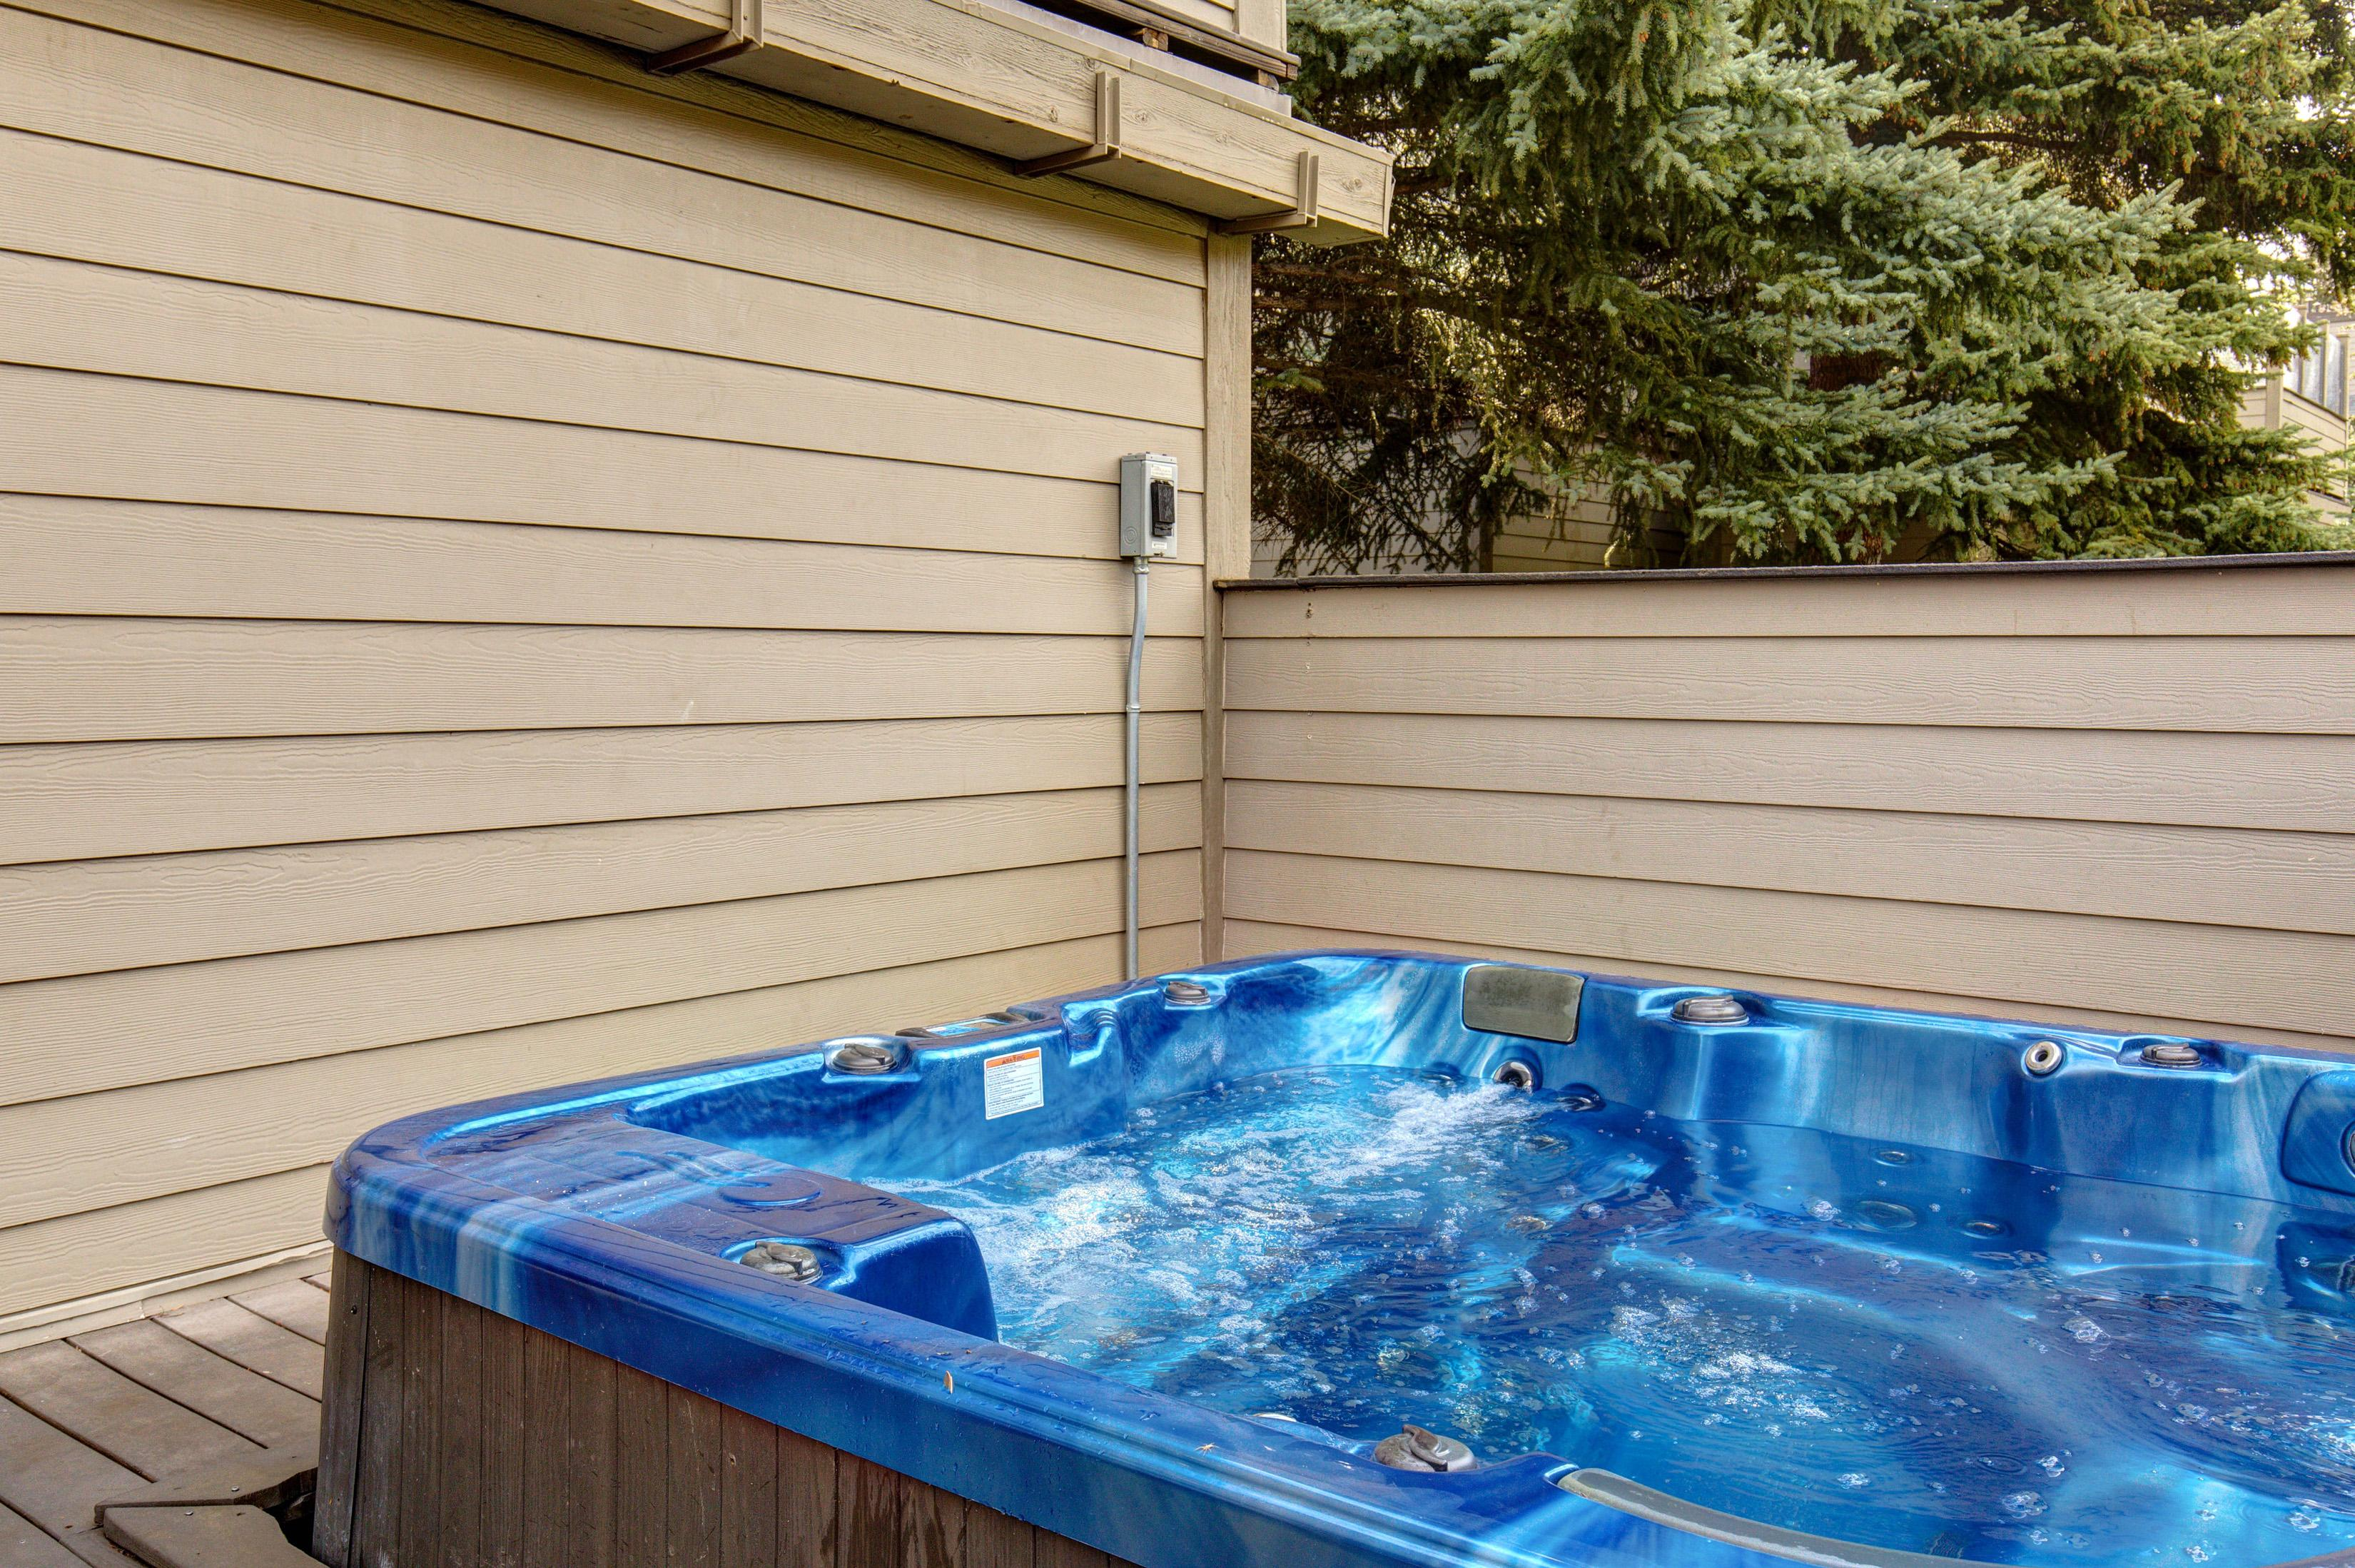 Luxuriate with a soak in your private hot tub.